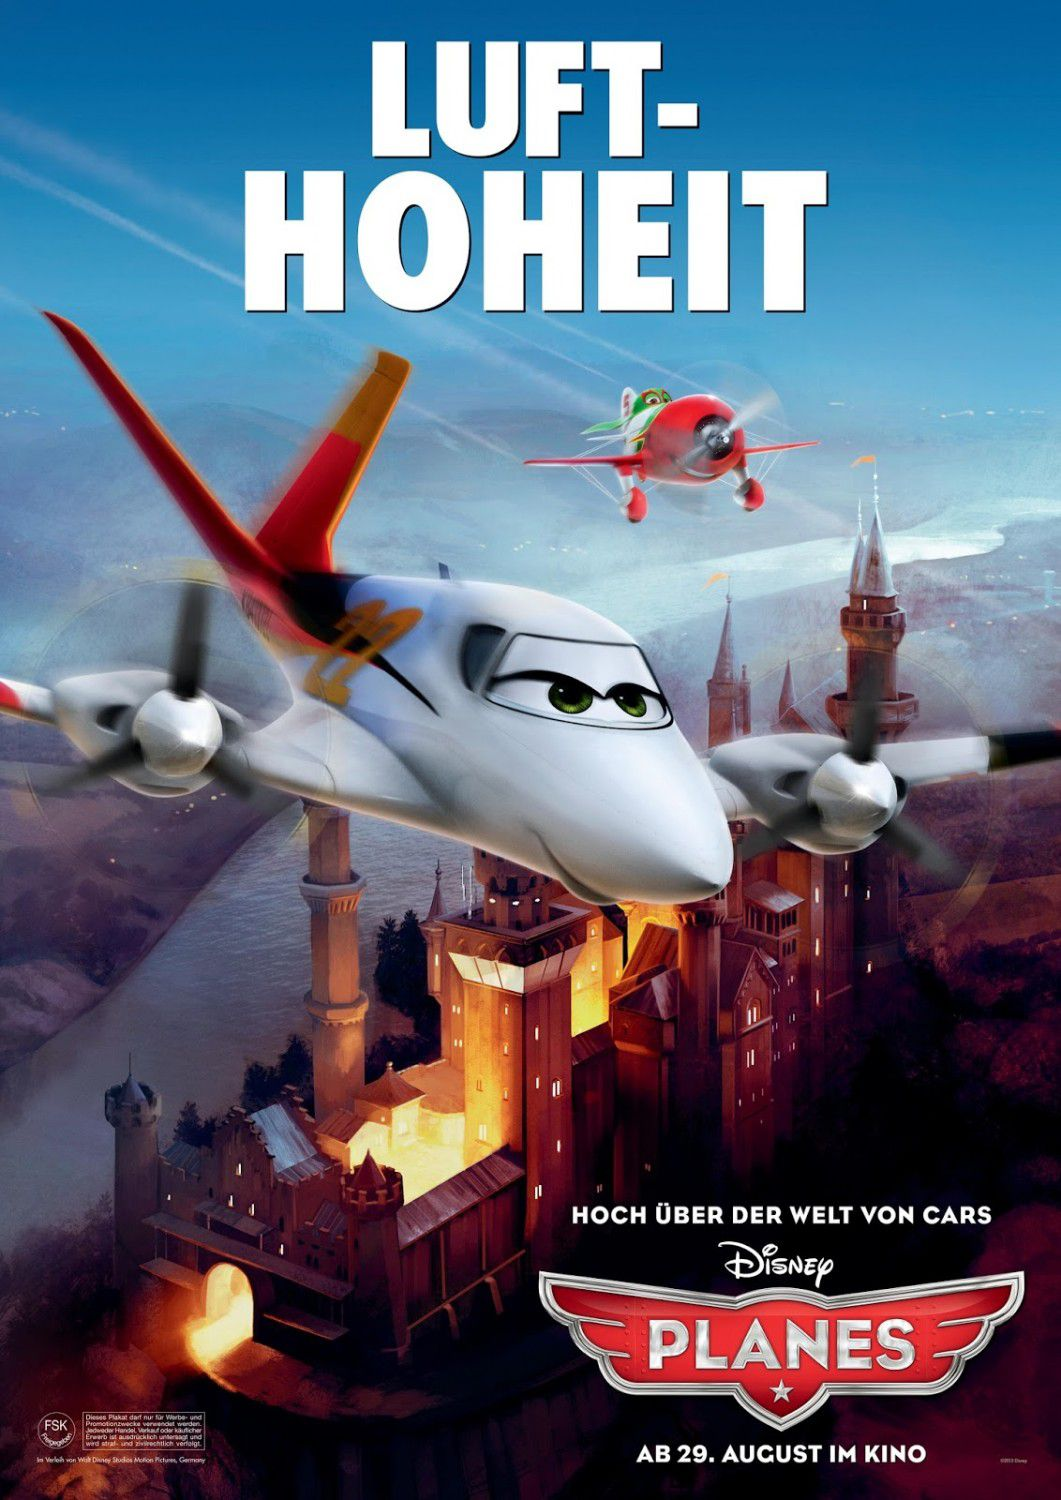 Planes - animated Disney film poster  - Luft